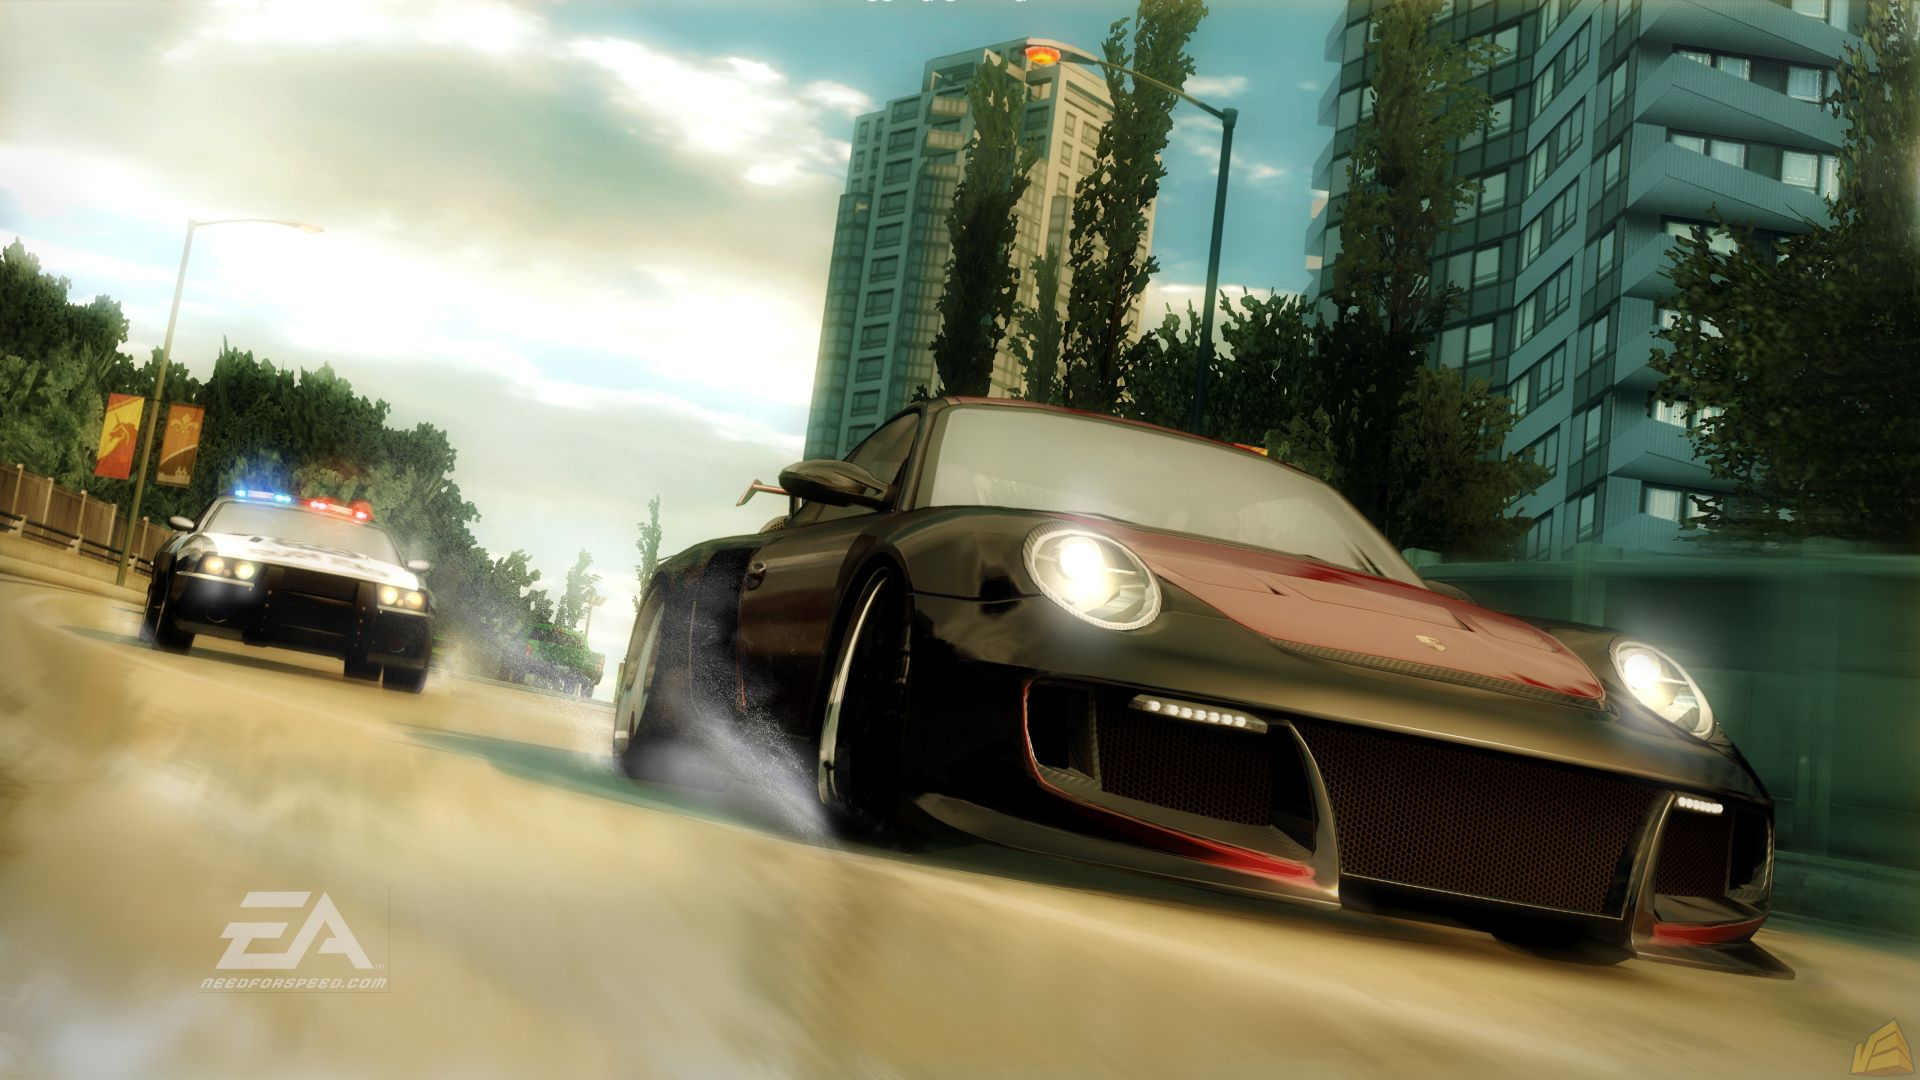 Need For Speed Undercover Free Download - Ocean Of Games